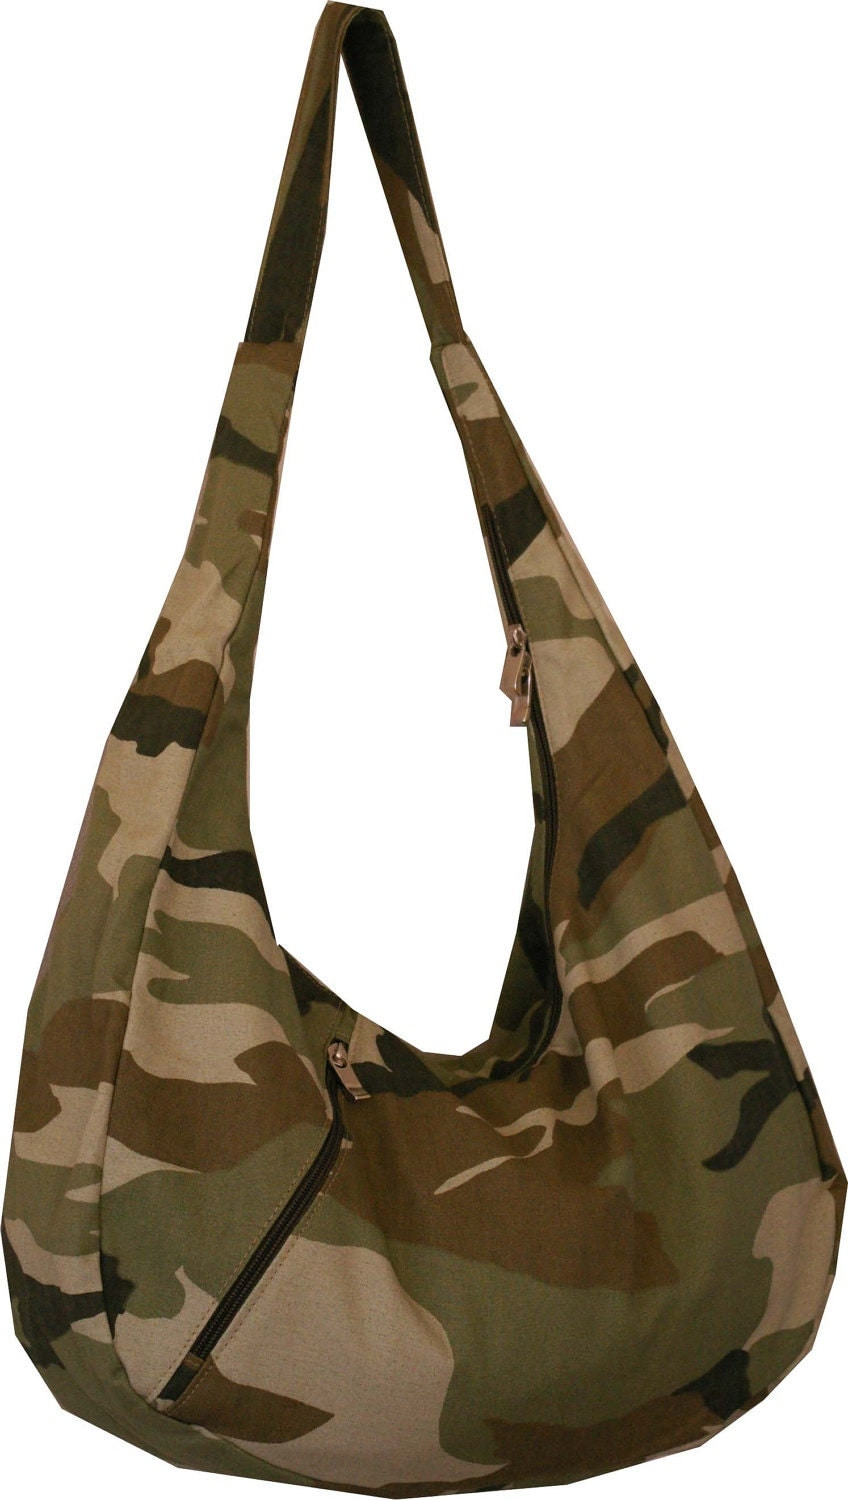 One of a Kind Carolina Stefano handmade purse, army print - Green.